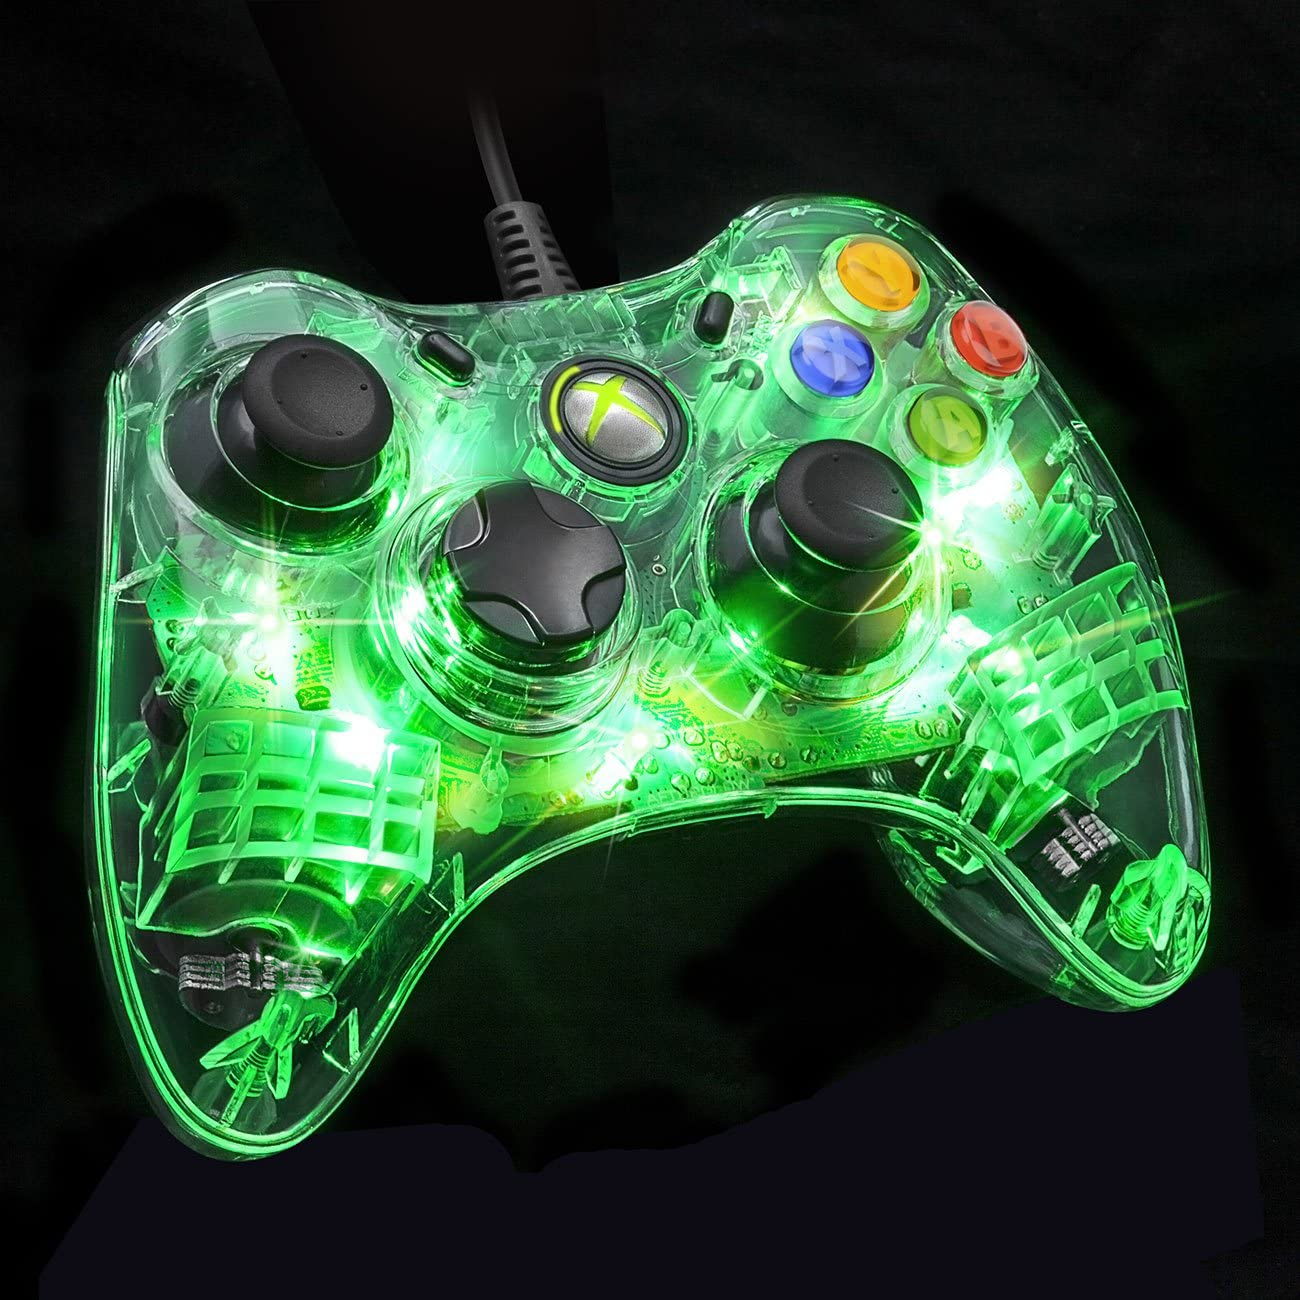 Amazon.com: Afterglow Wired Controller for Xbox 360 - Green: Video Games